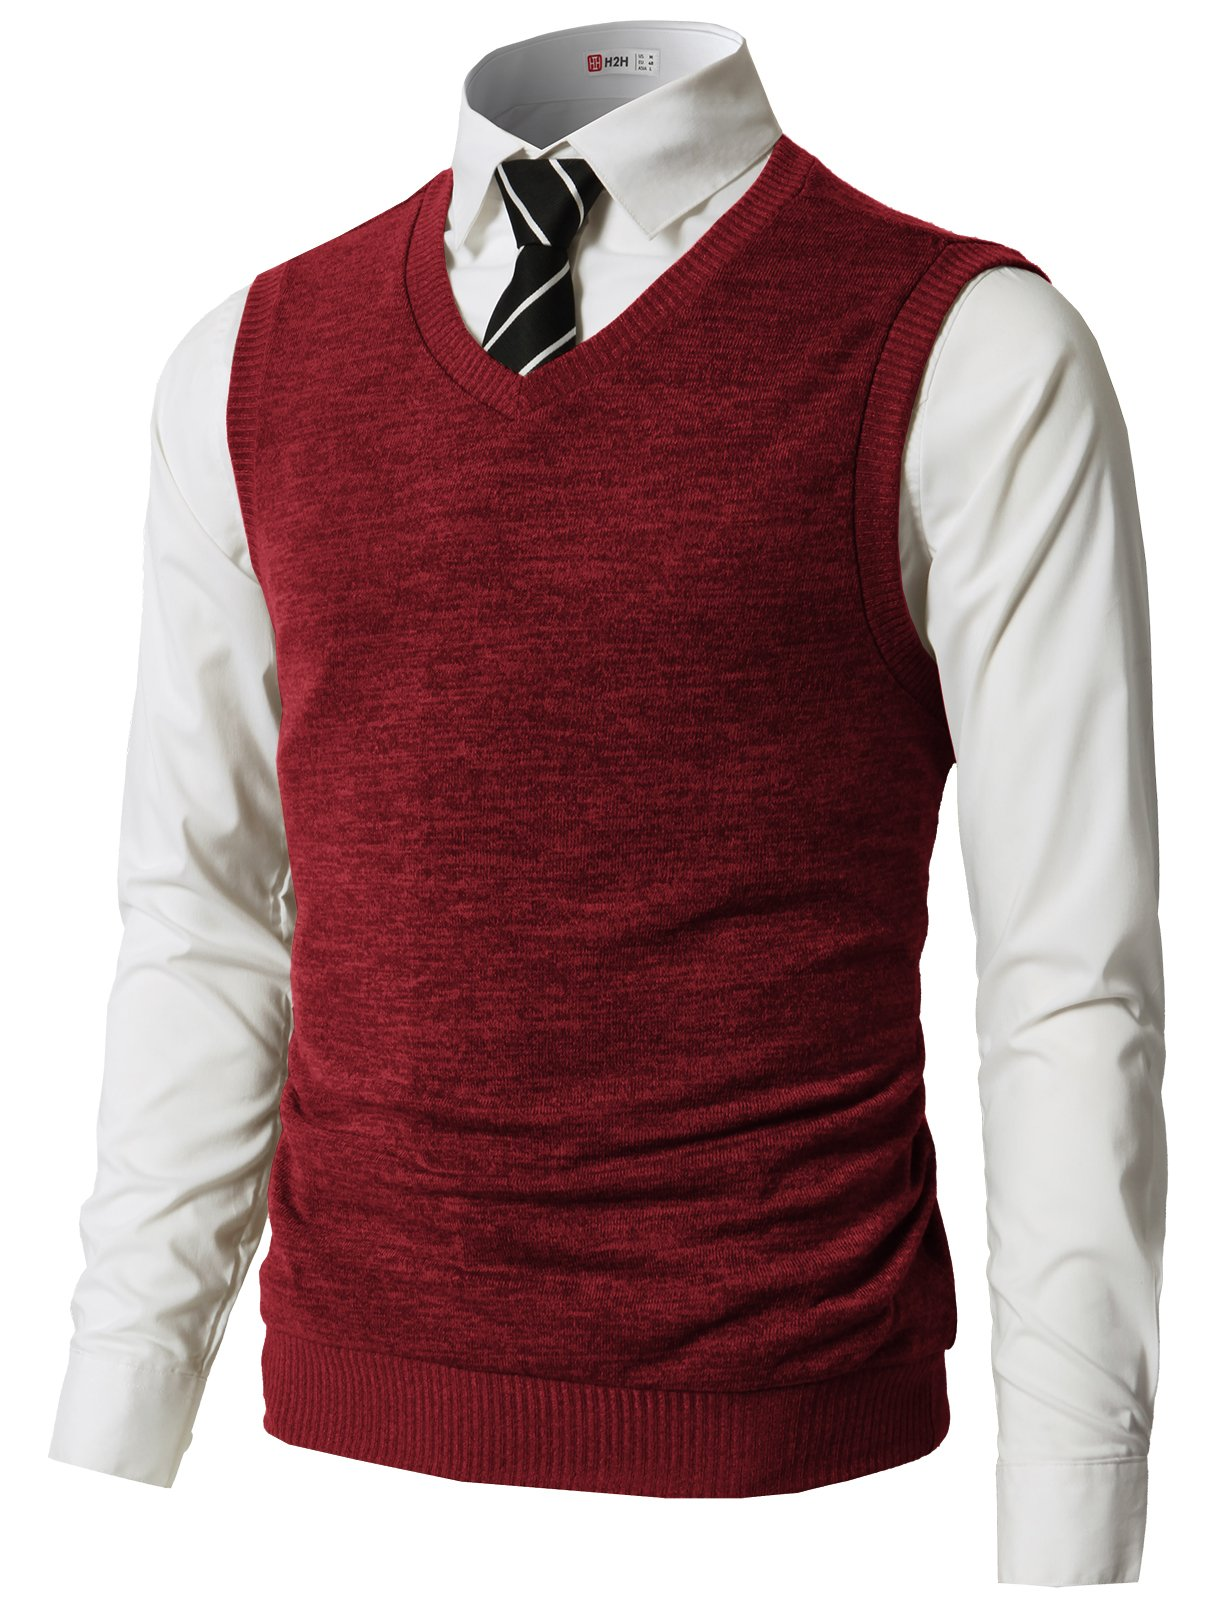 H2H Mens Slim Fit Casual V-Neck Knit Vest RED US M/Asia L (CMOV042) by H2H